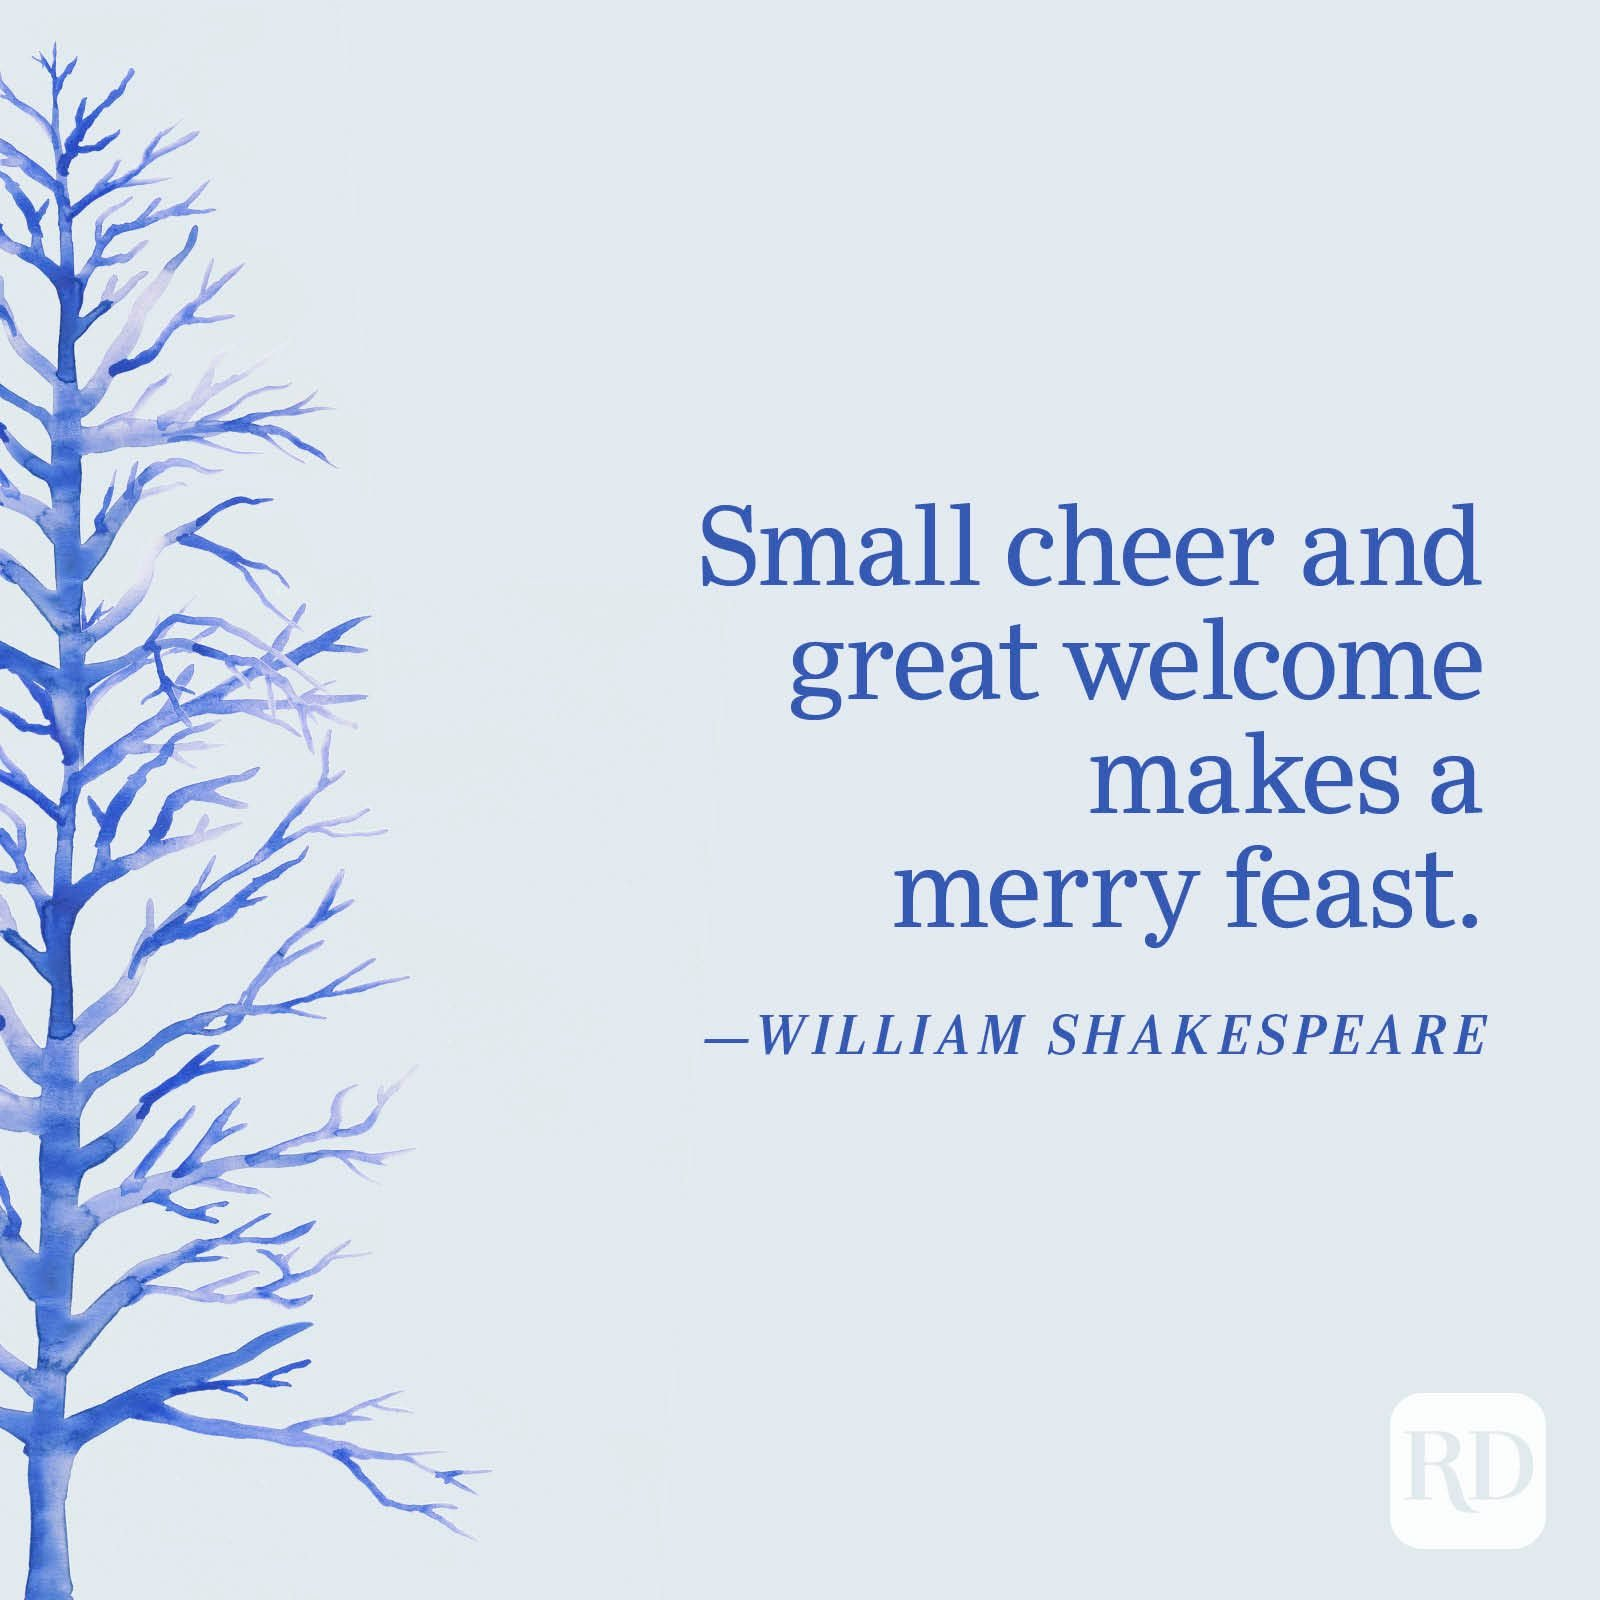 """""""Small cheer and great welcome makes a merry feast."""" —William Shakespeare"""